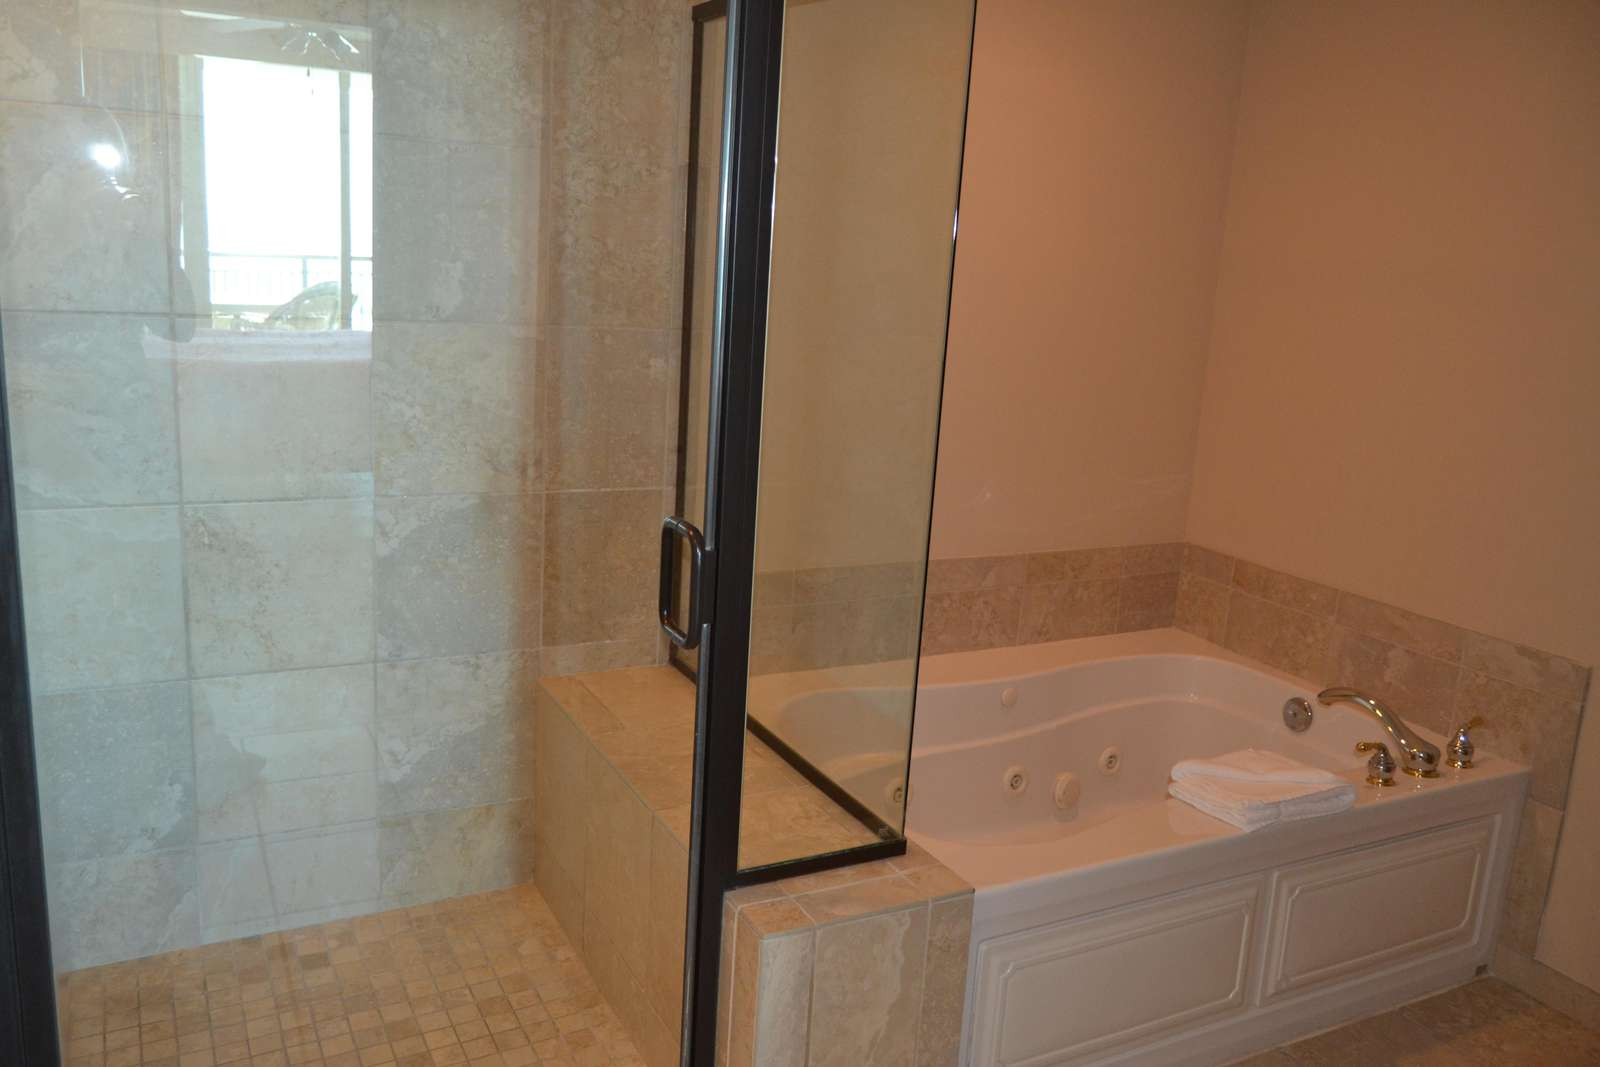 Stall shower, jetted tub